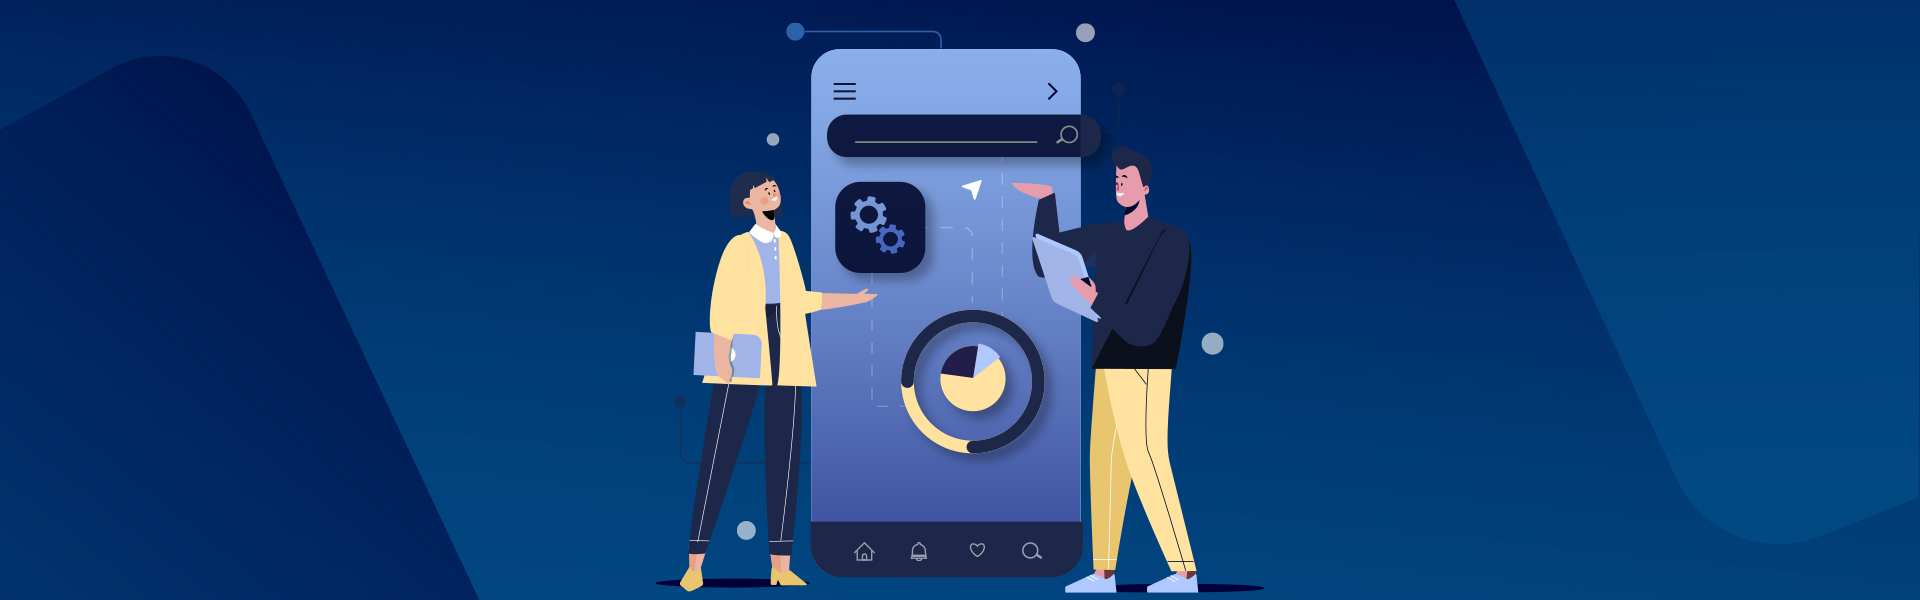 How-to-Outsource-App-Development-in-2021_main-banner